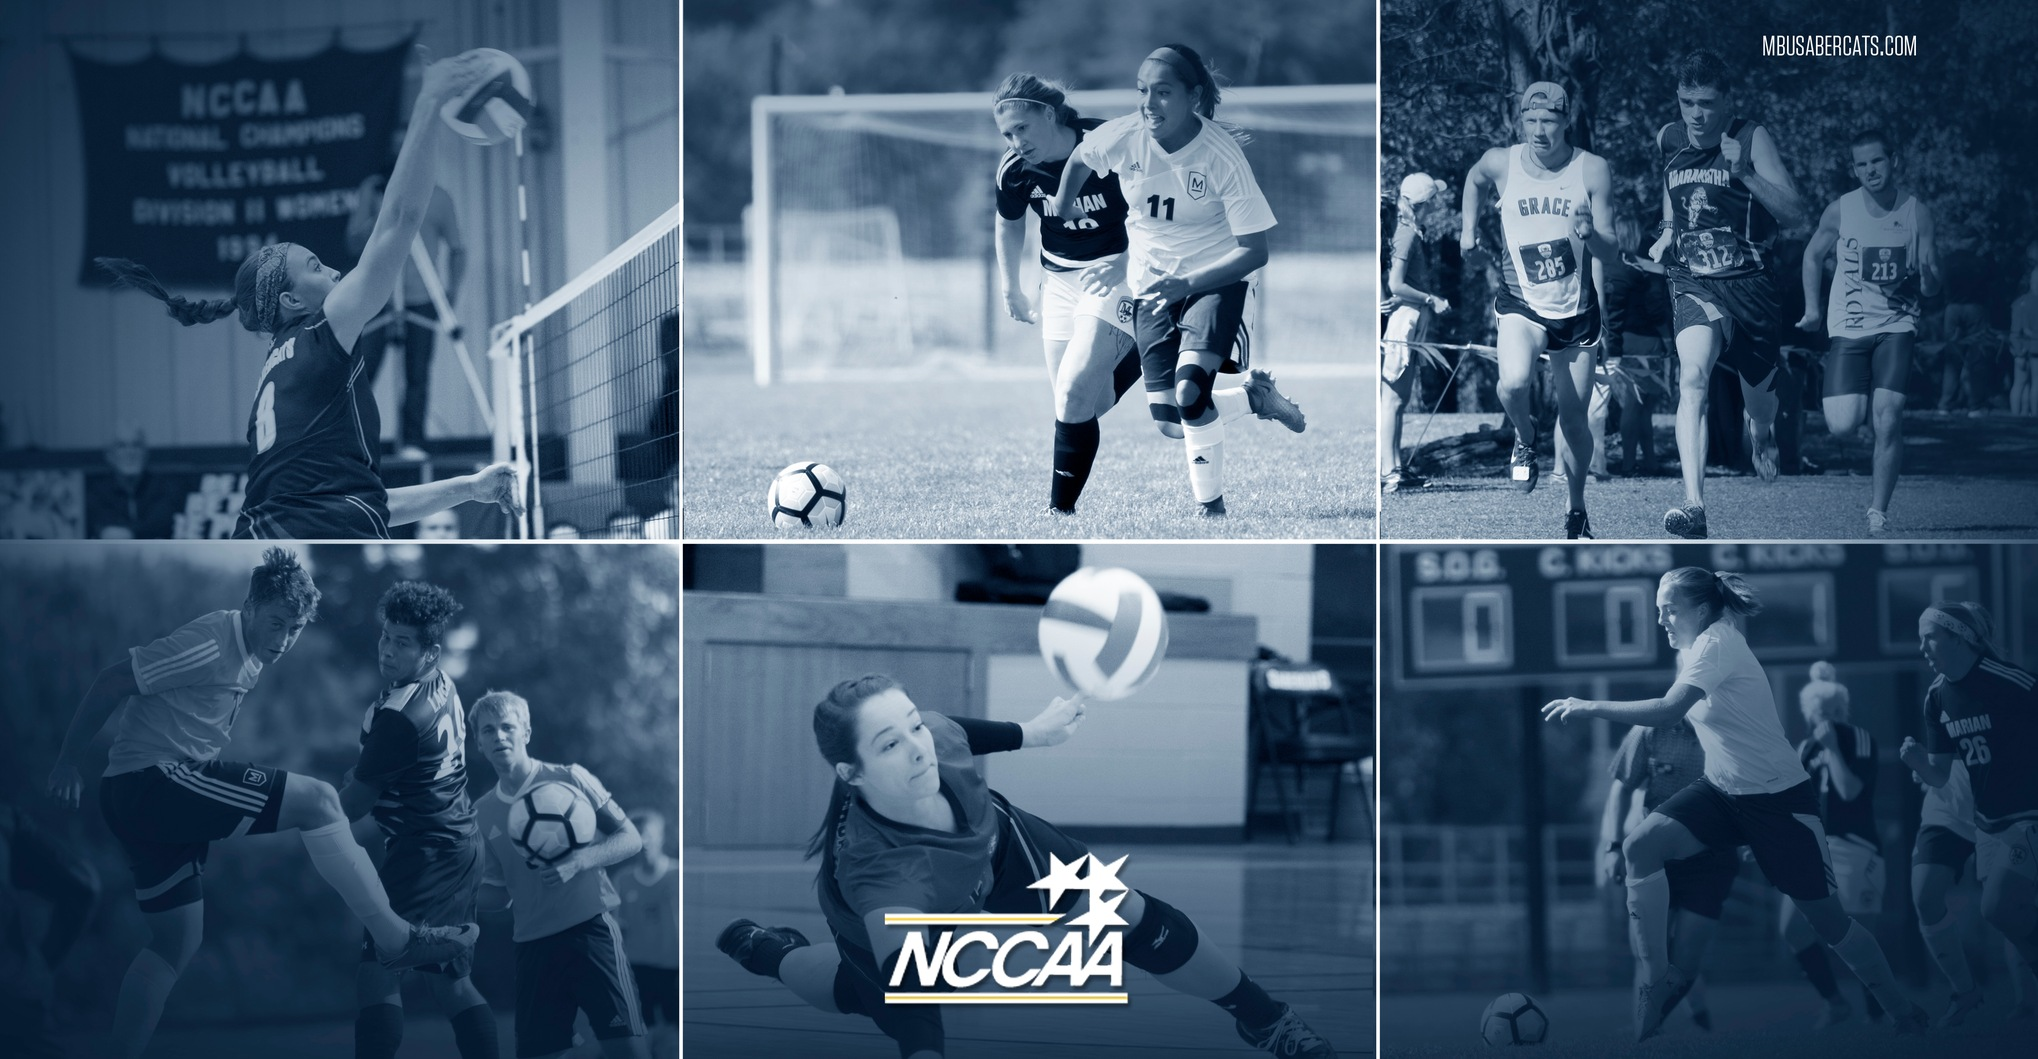 NCCAA All-Americans: 6 Sabercats Make the Cut